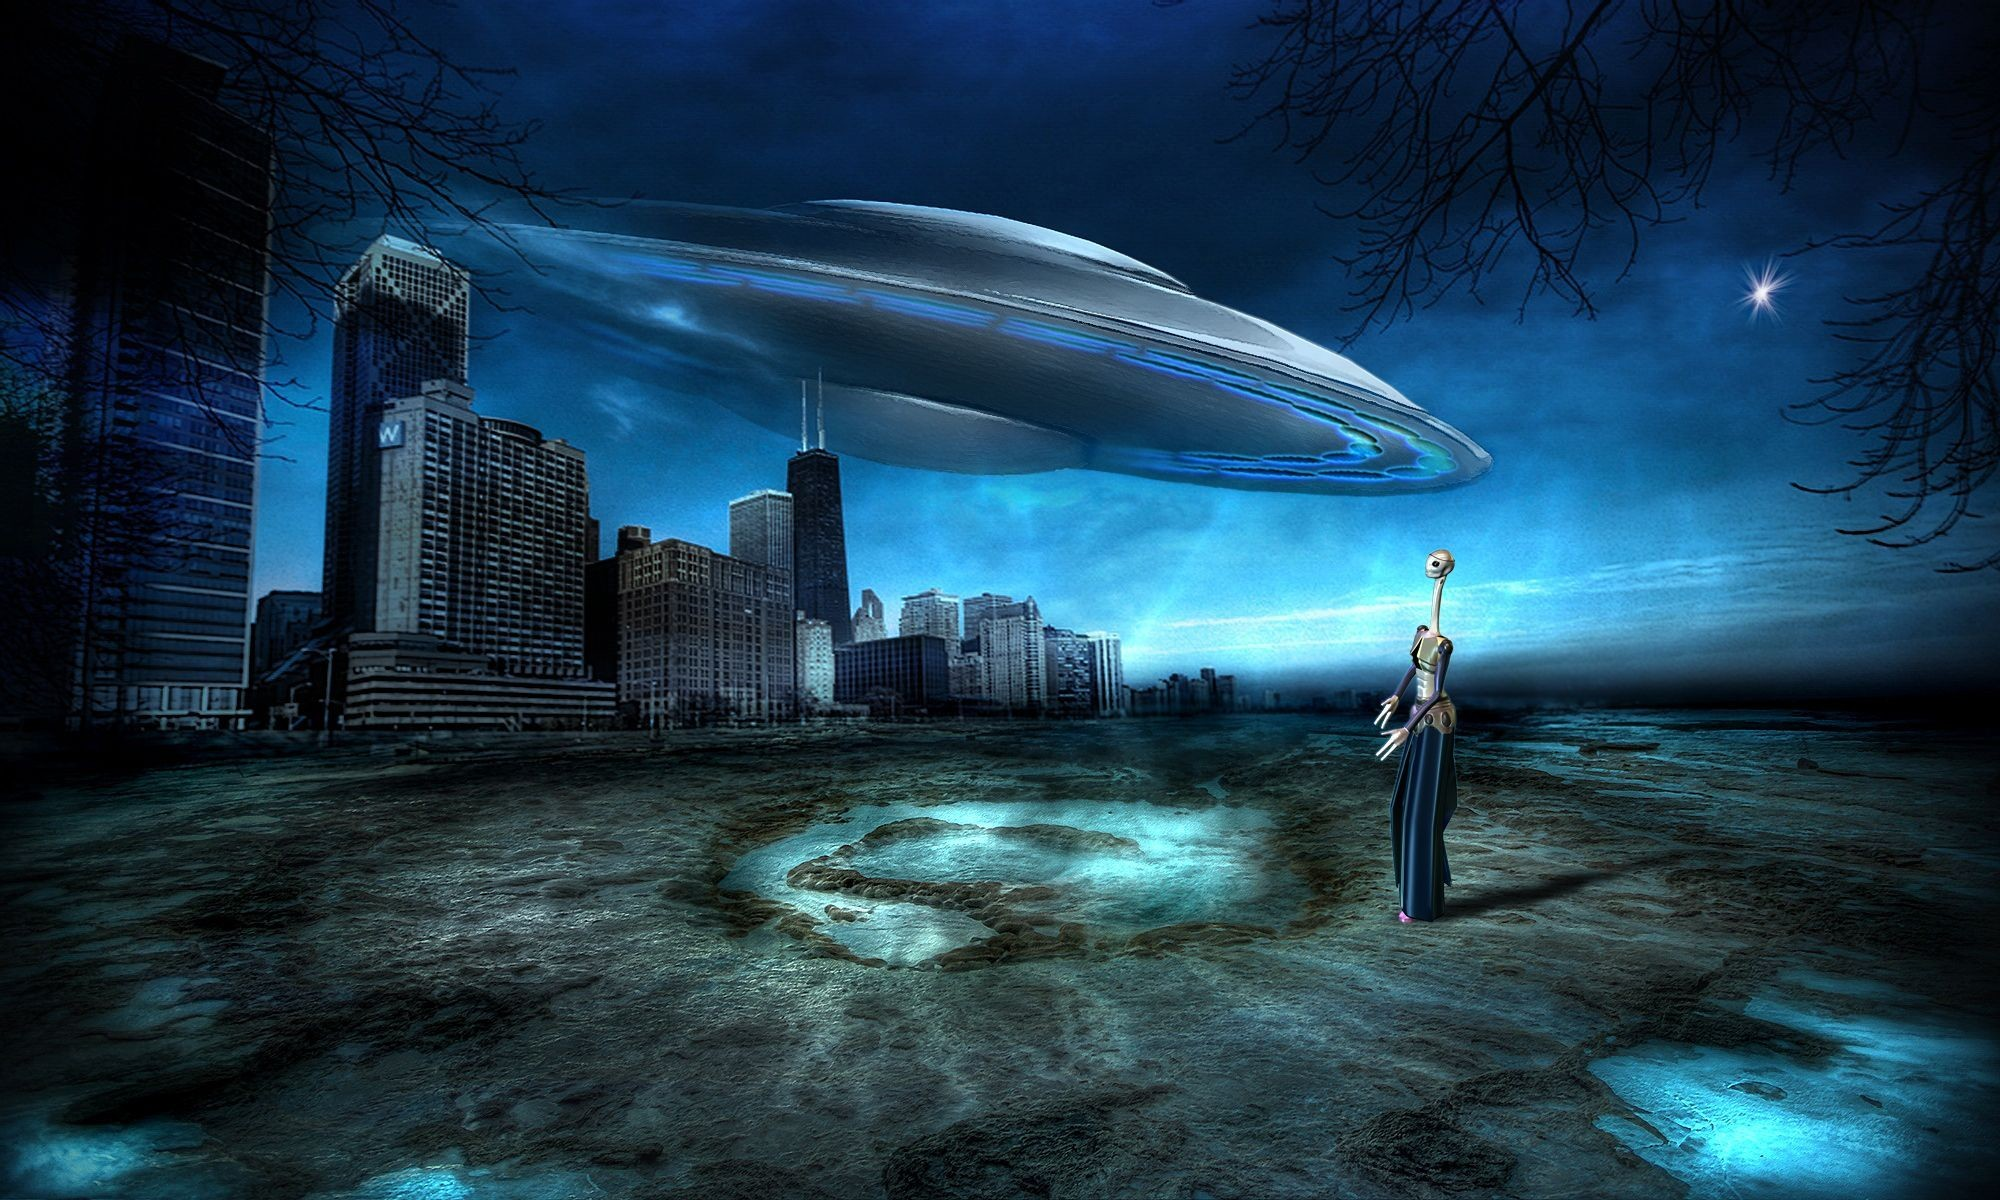 2000x1200 ufo Spaceship, Aliens And Ufos, Ancient Aliens, Science Fiction, Alien  Photos,